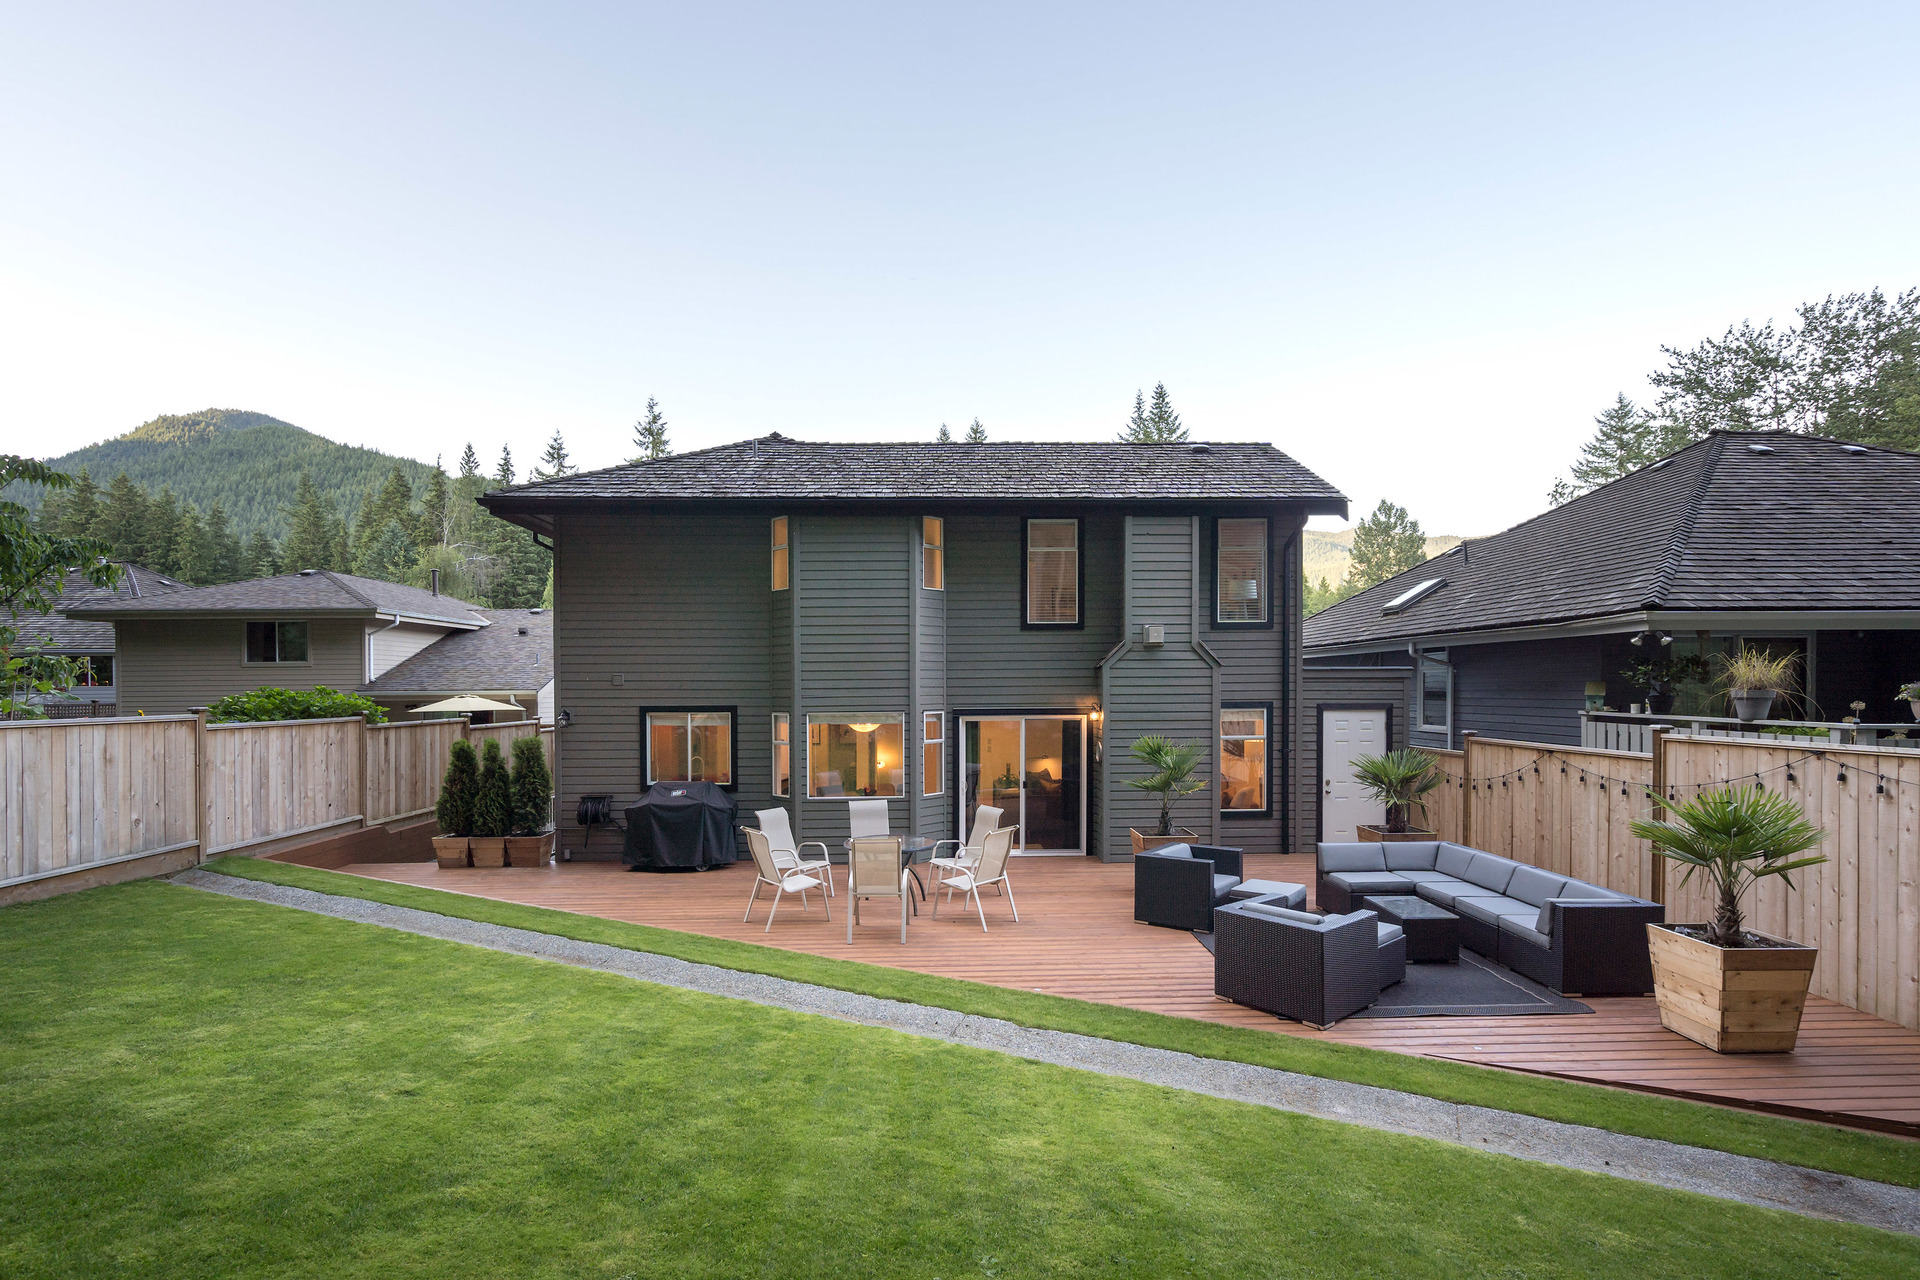 47f62b1 at 4753 Woodrow Crescent, Lynn Valley, North Vancouver